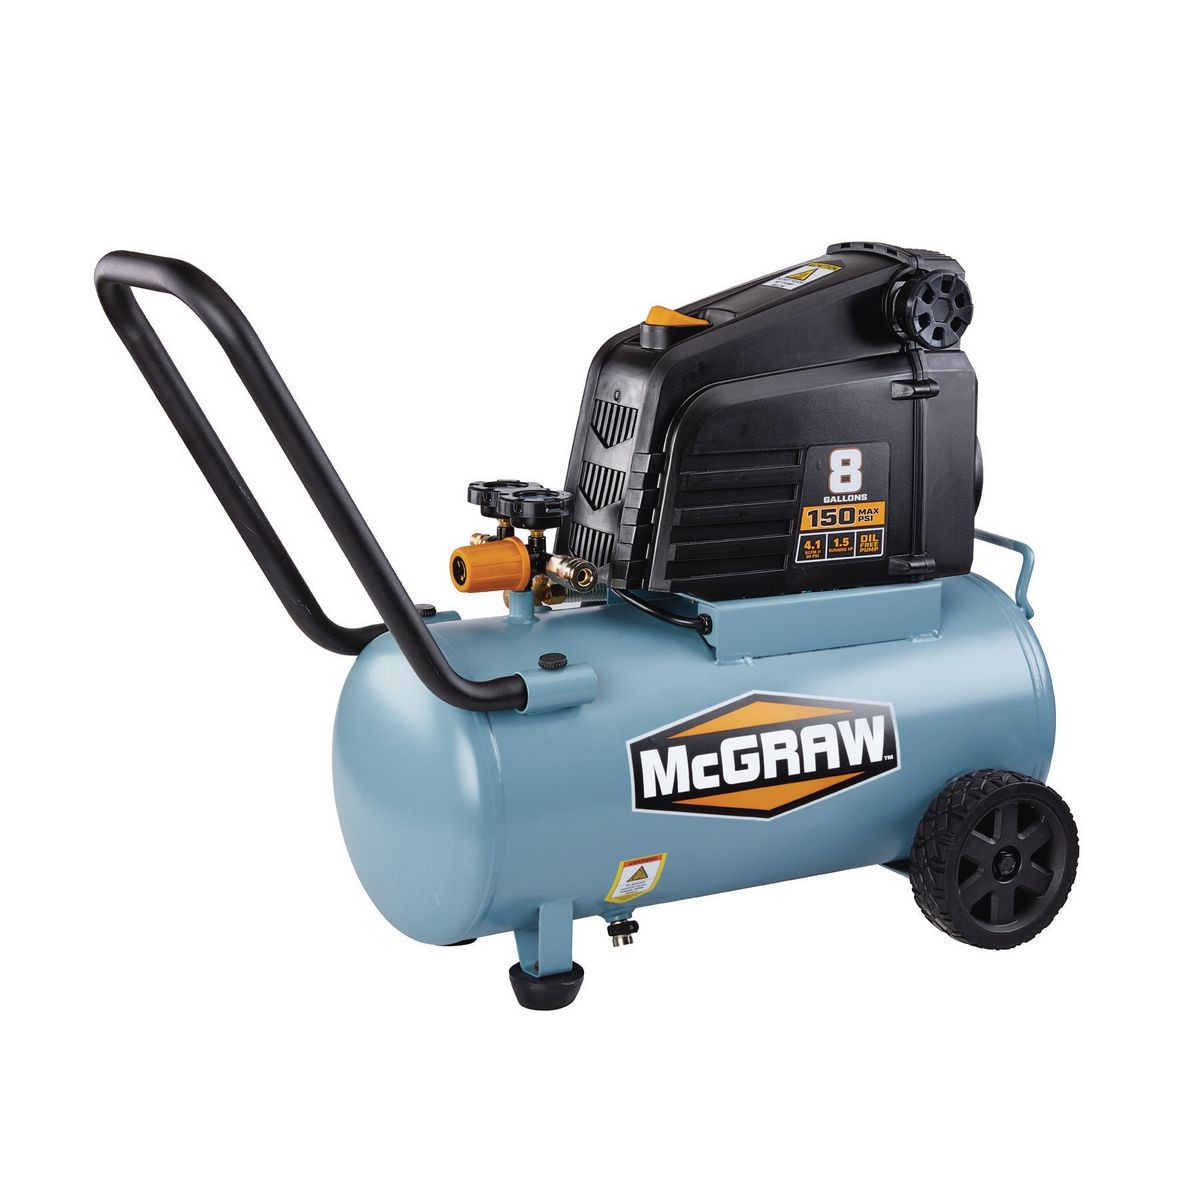 8 gallon 1.5 HP 150 PSI Oil Free Portable Air Compressor